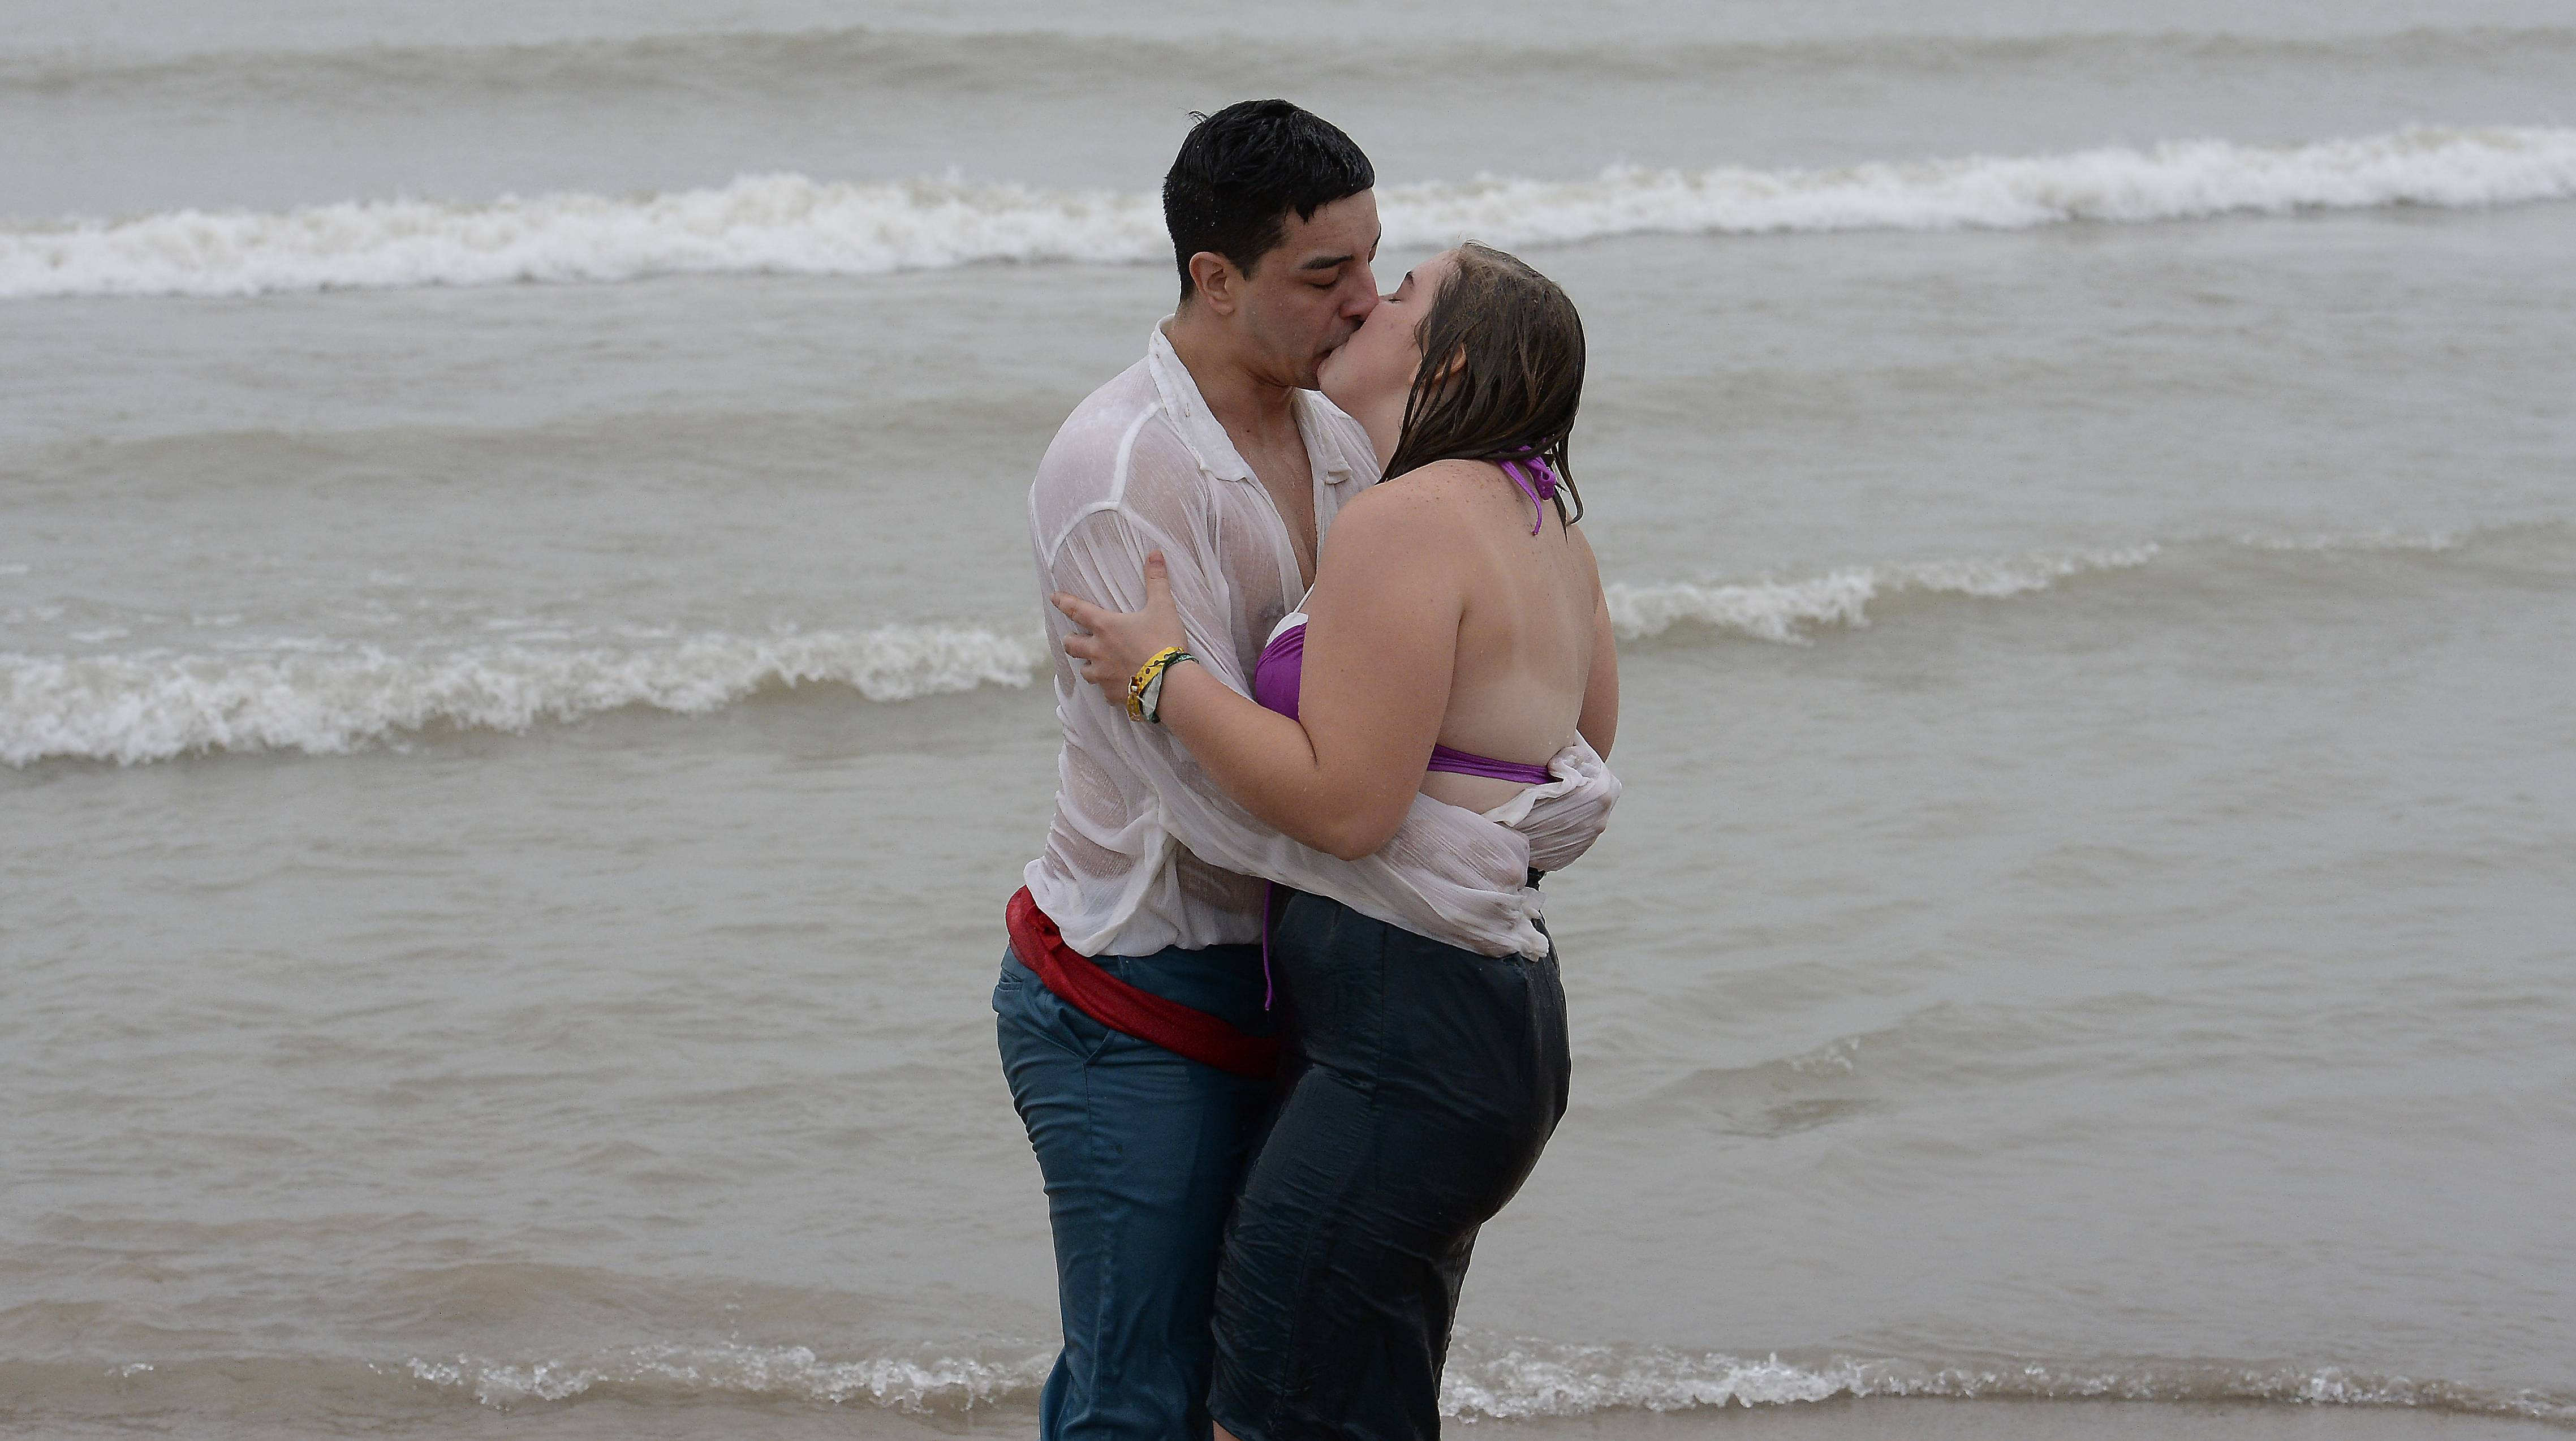 "The 20th Annual Polar Bear Plunge challenge was met with over a hundred enthusiastic, brave souls like Eric Bonilla, of Waukegan and his girlfriend Lynsey Gallagher of Kenosha, Wisconsin who wanted to do good for the Waukegan Special Recreation Services. ""Getting in the water is not so bad, it's getting out,"" said Gallagher of her first plunge. Then Bonilla planted a big kiss on her after they braved the waves."